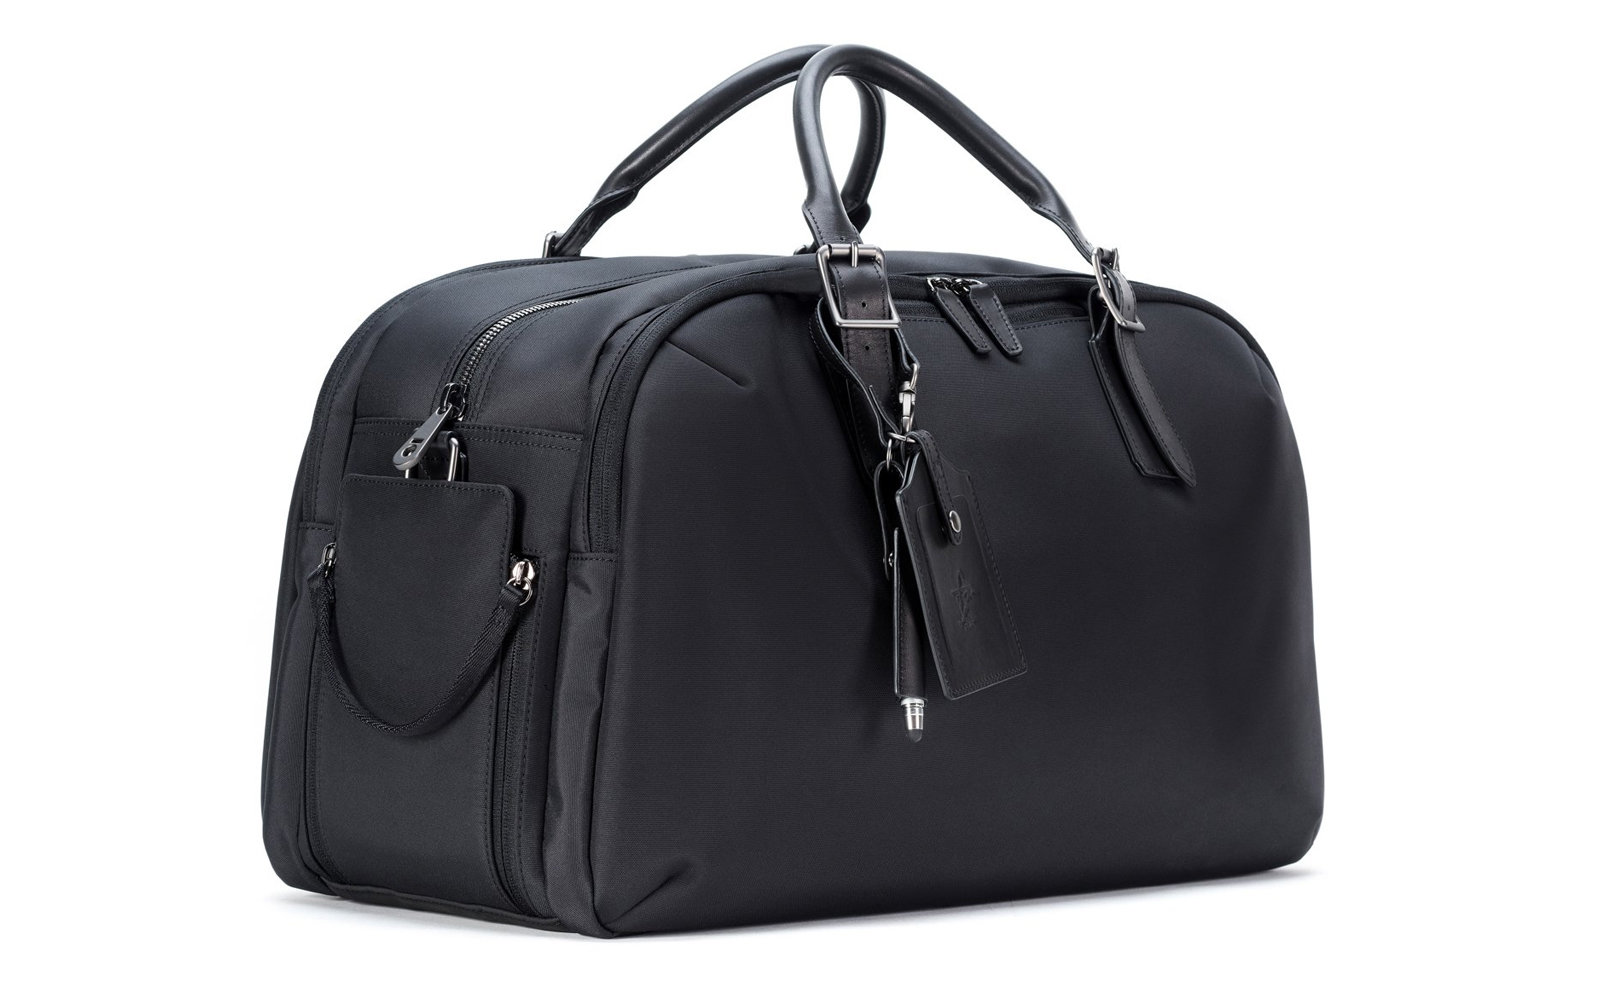 Best Men's Travel Accessories